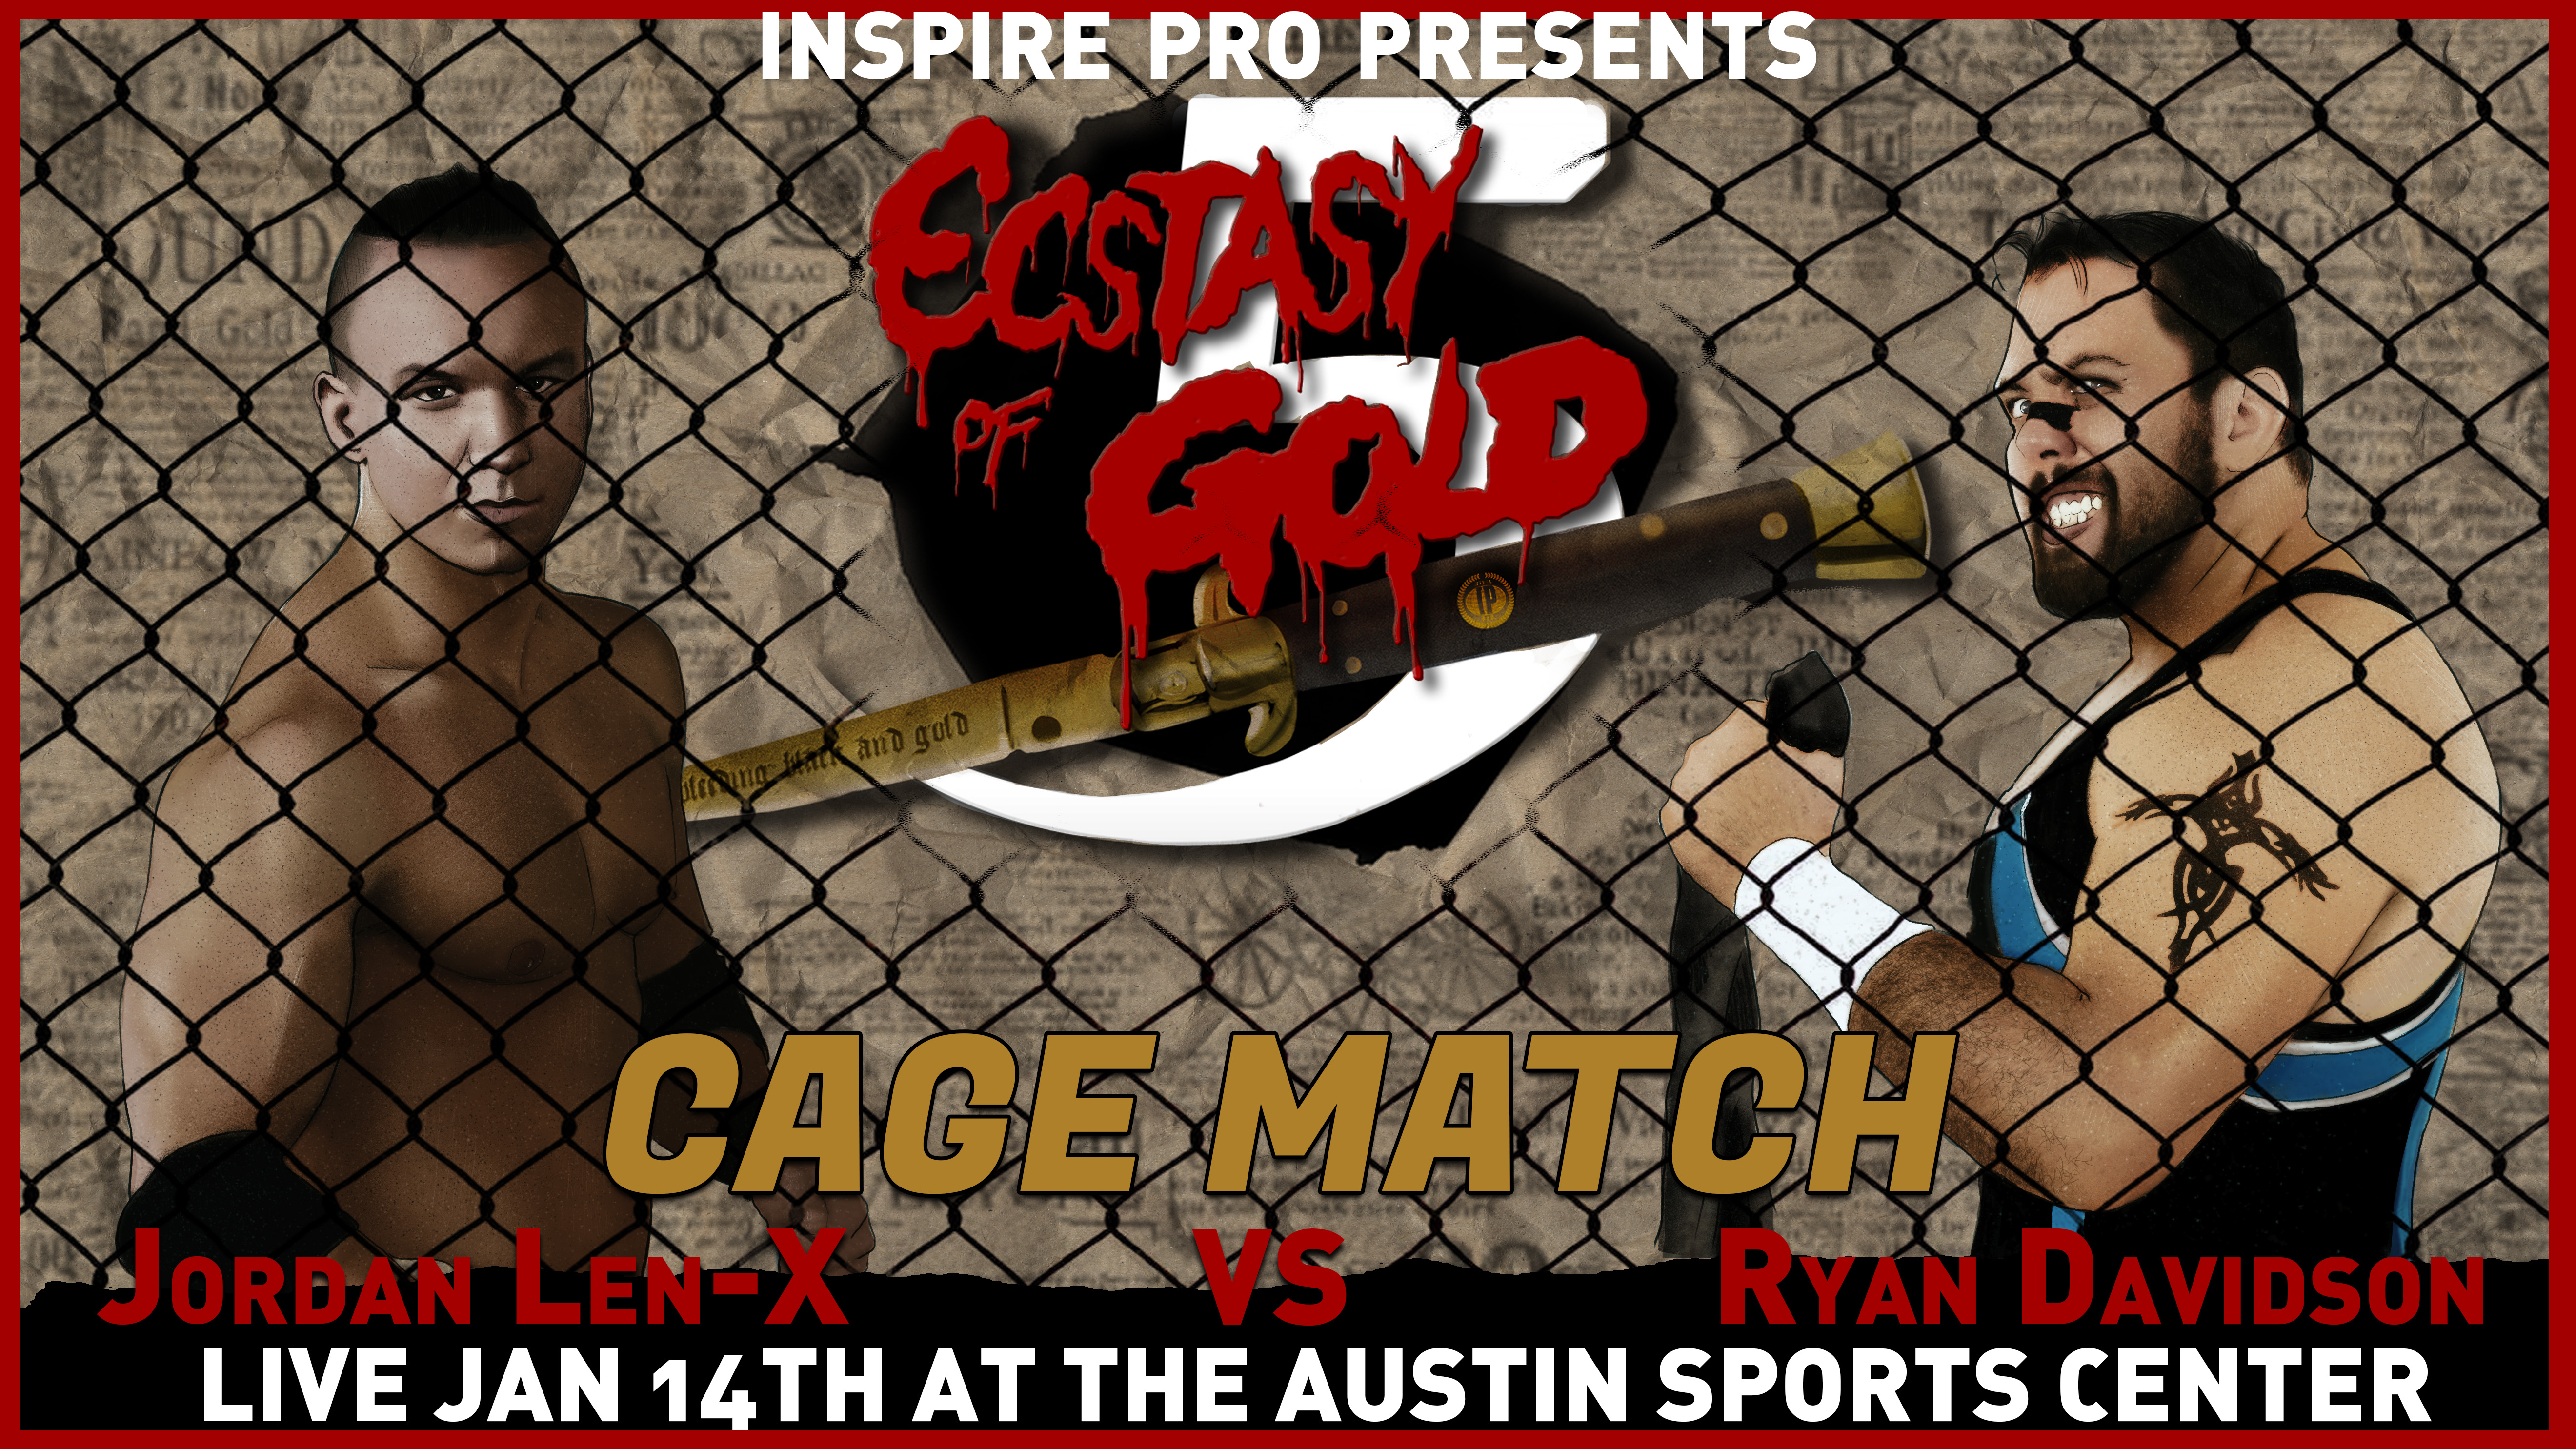 Ecstasy Of Gold 5 11418 In Austin Inspire Pro Wrestling Sorban Long Black Shirt Showing Up Late Is Not An Option Also We Have Added A New Stipulation The Winner This Matchup Will Go On To Challenge For Championship